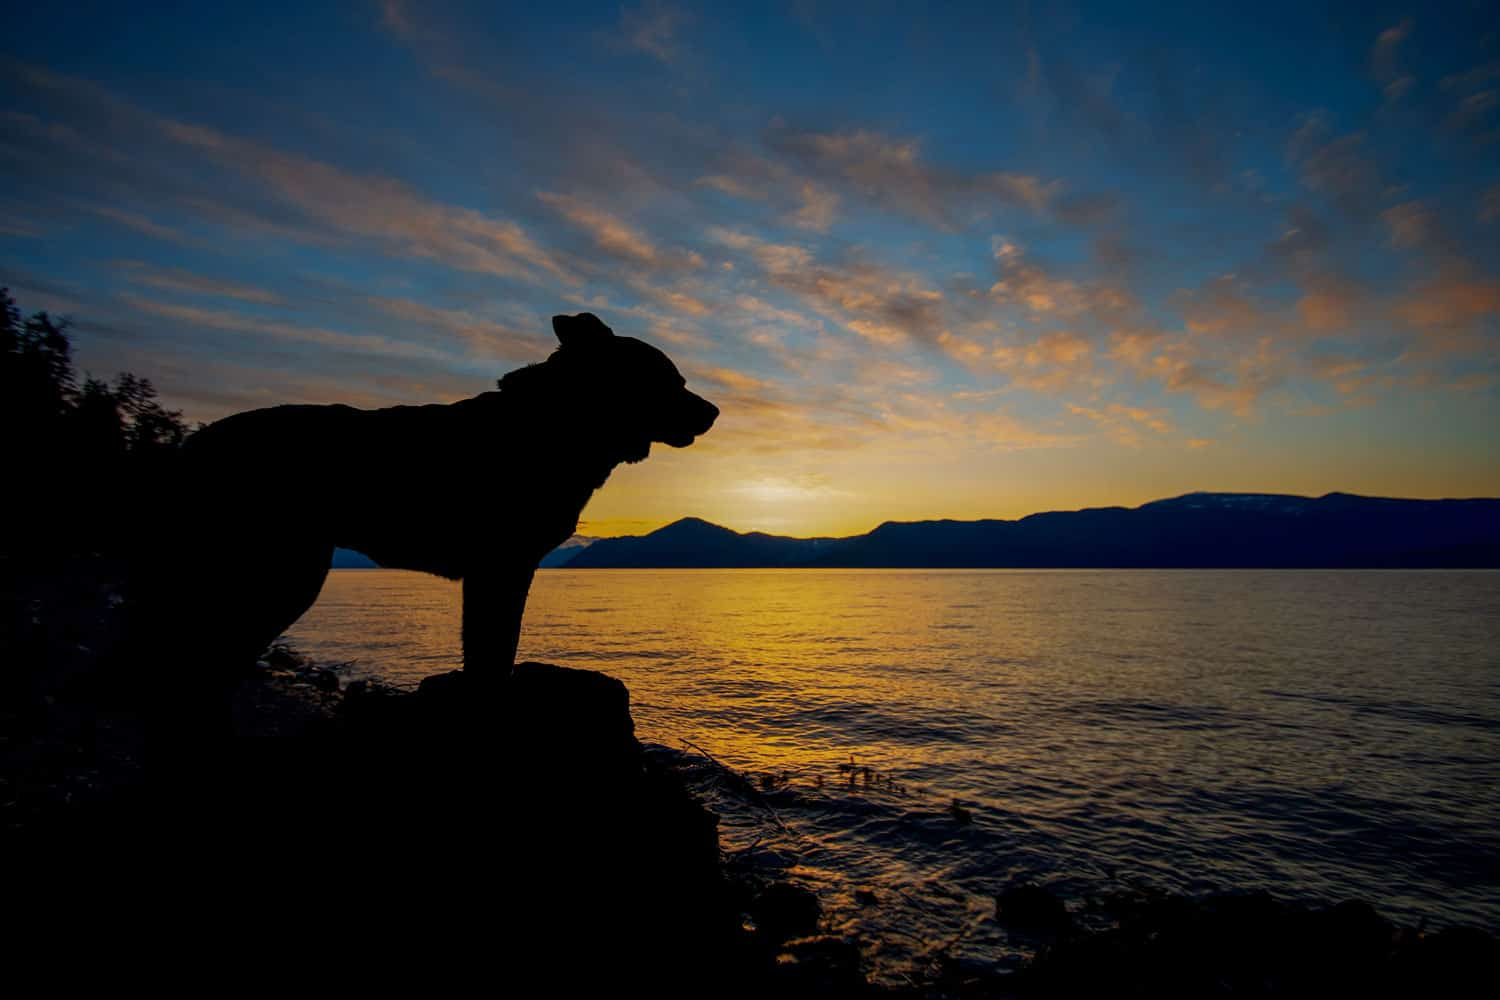 Dog in silhouette on Pend Oreille Lake in North Idaho